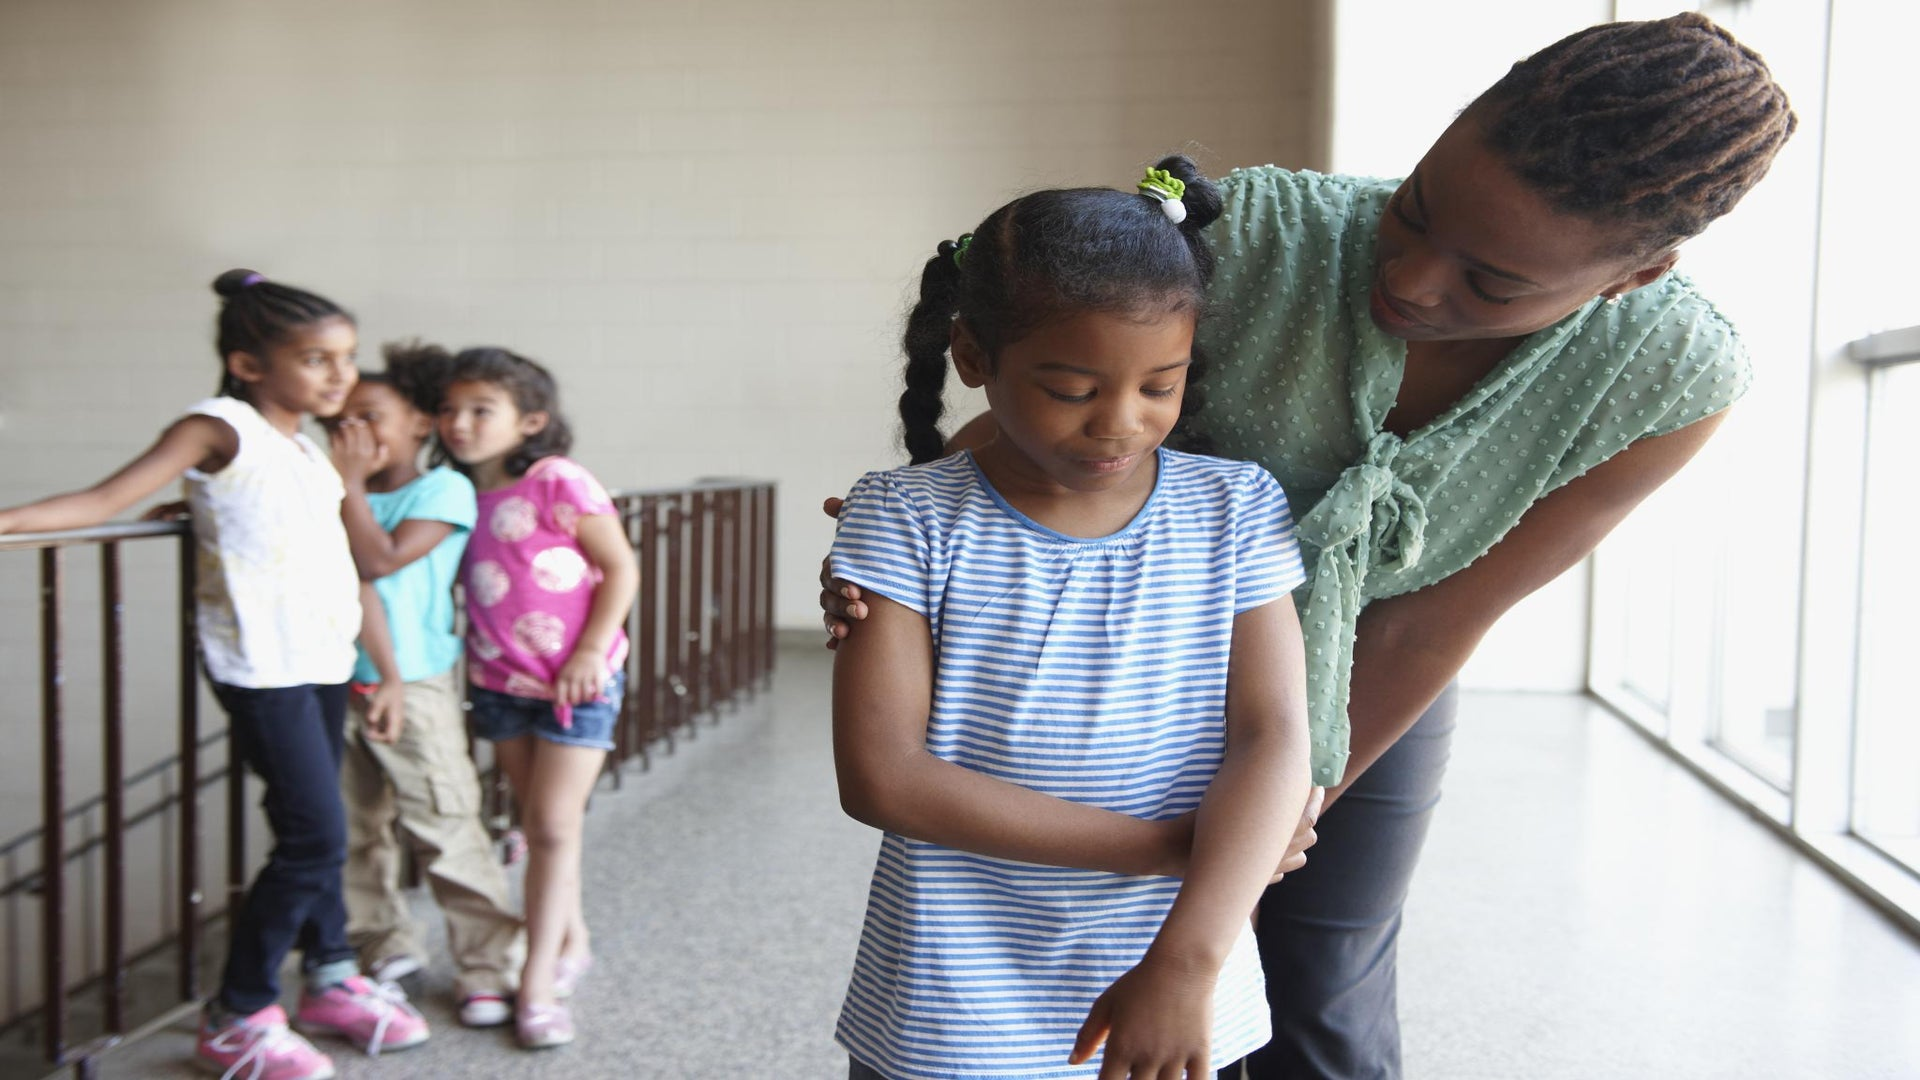 ESSENCE Poll: How Should You Treat a Bully?